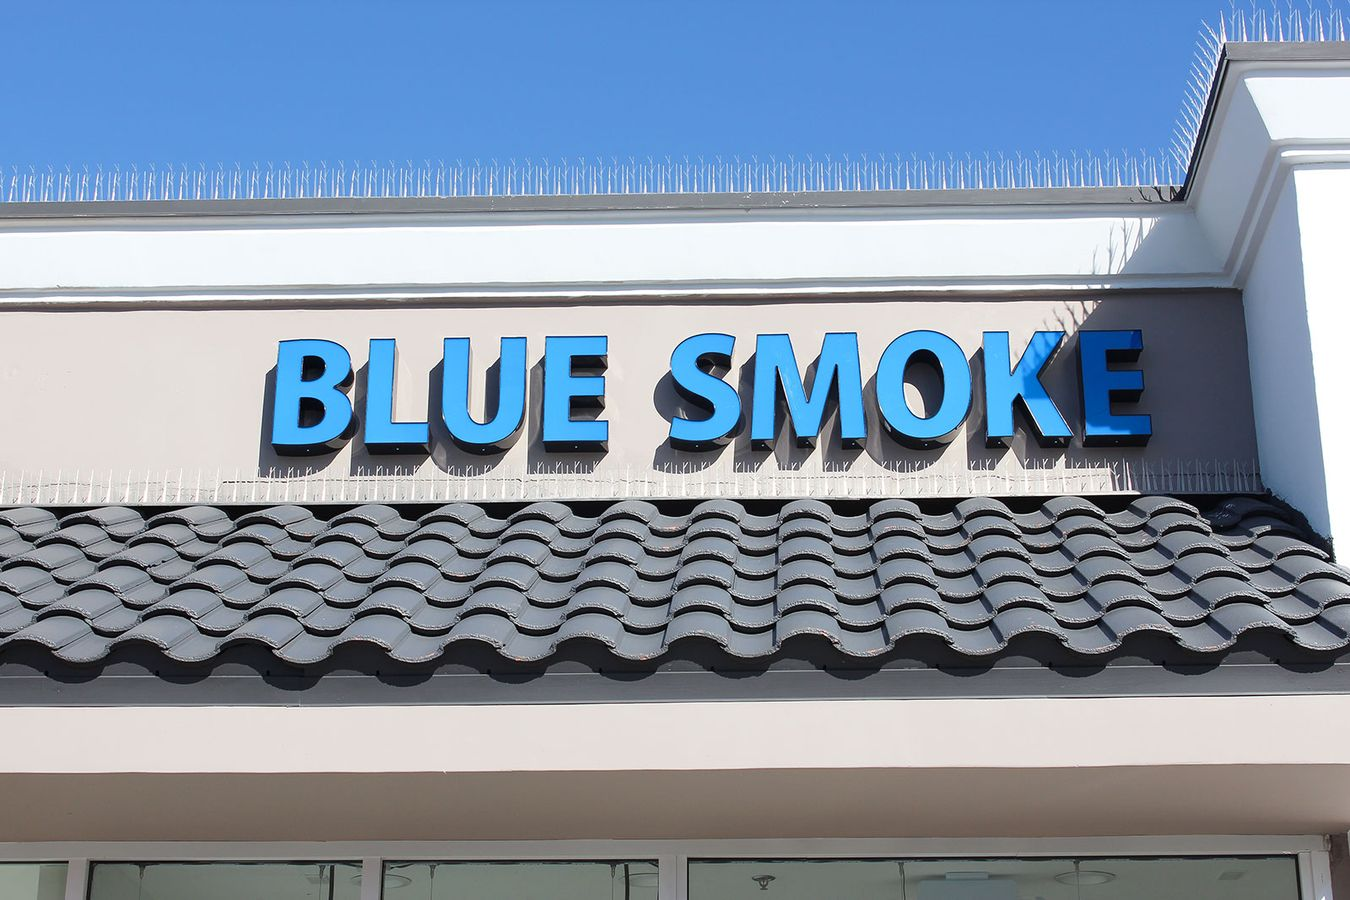 Blue Smoke channel letters